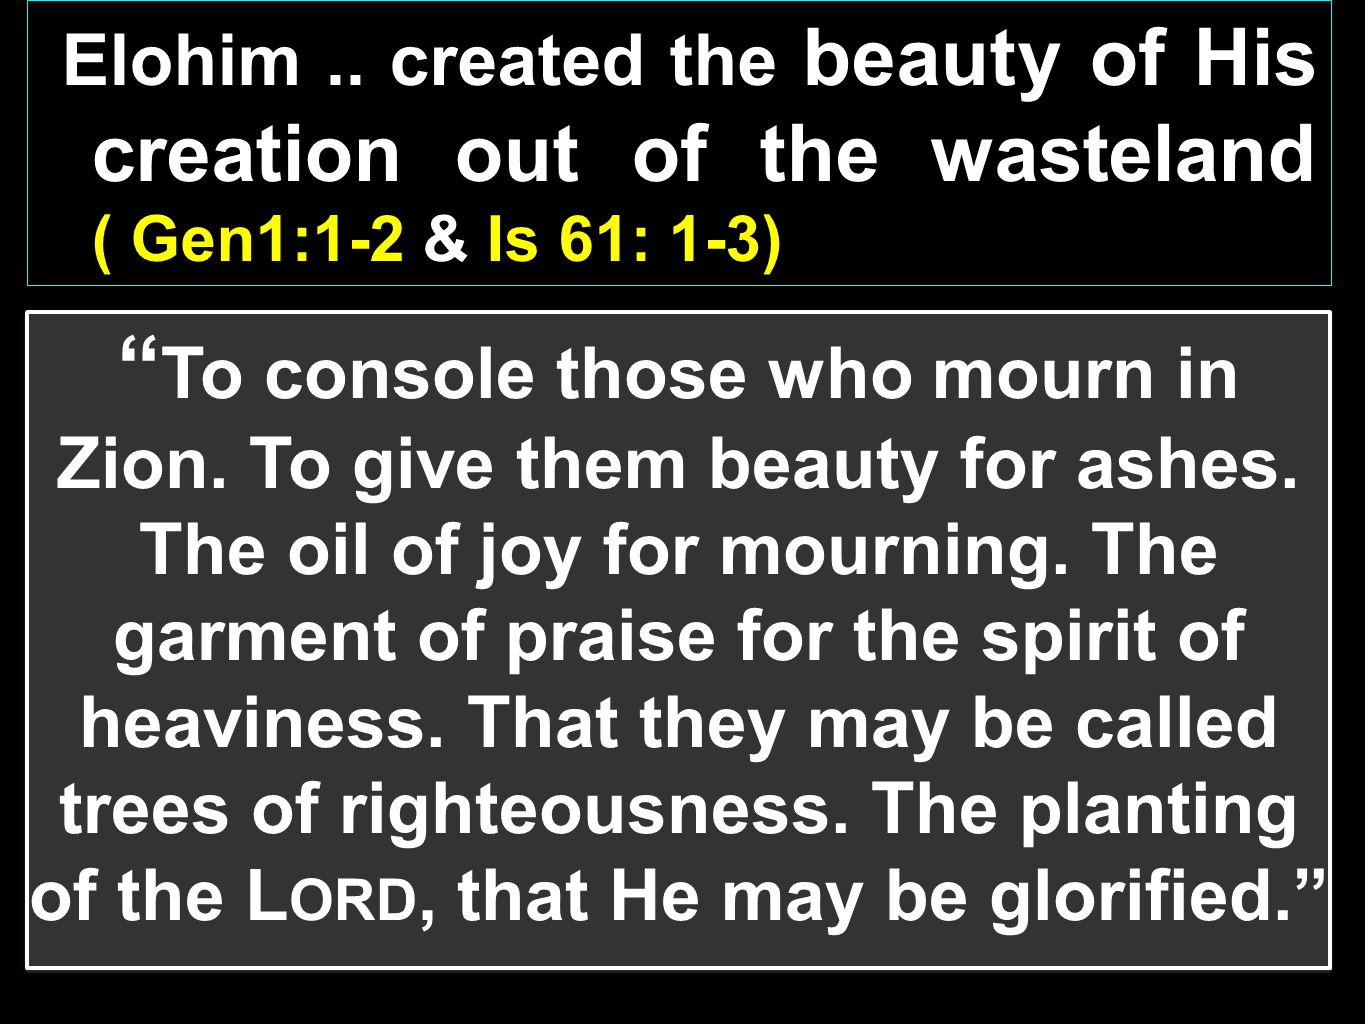 Elohim .. created the beauty of His creation out of the wasteland ( Gen1:1-2 & Is 61: 1-3)